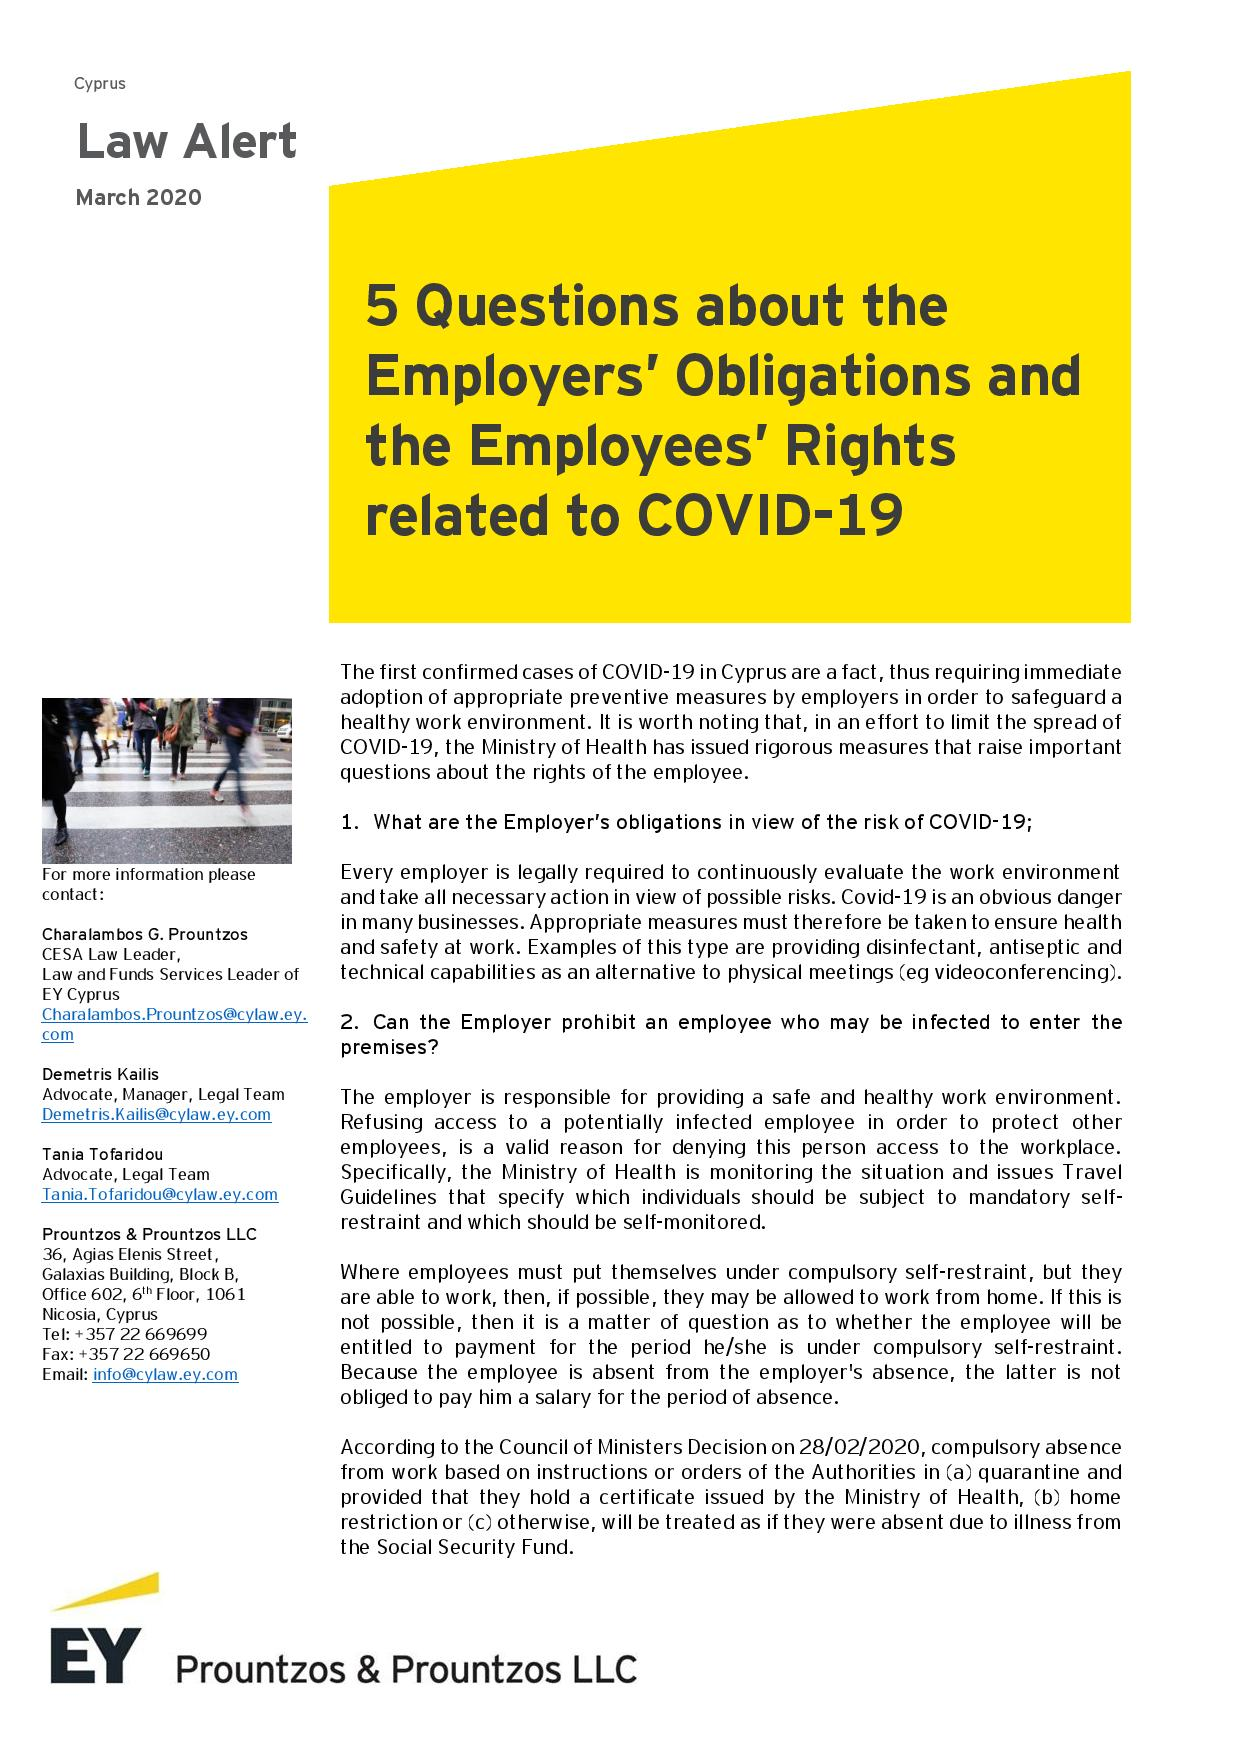 EY Cyprus: 5 Questions about the Employers' Obligations and the Employees' Rights related to COVID-19